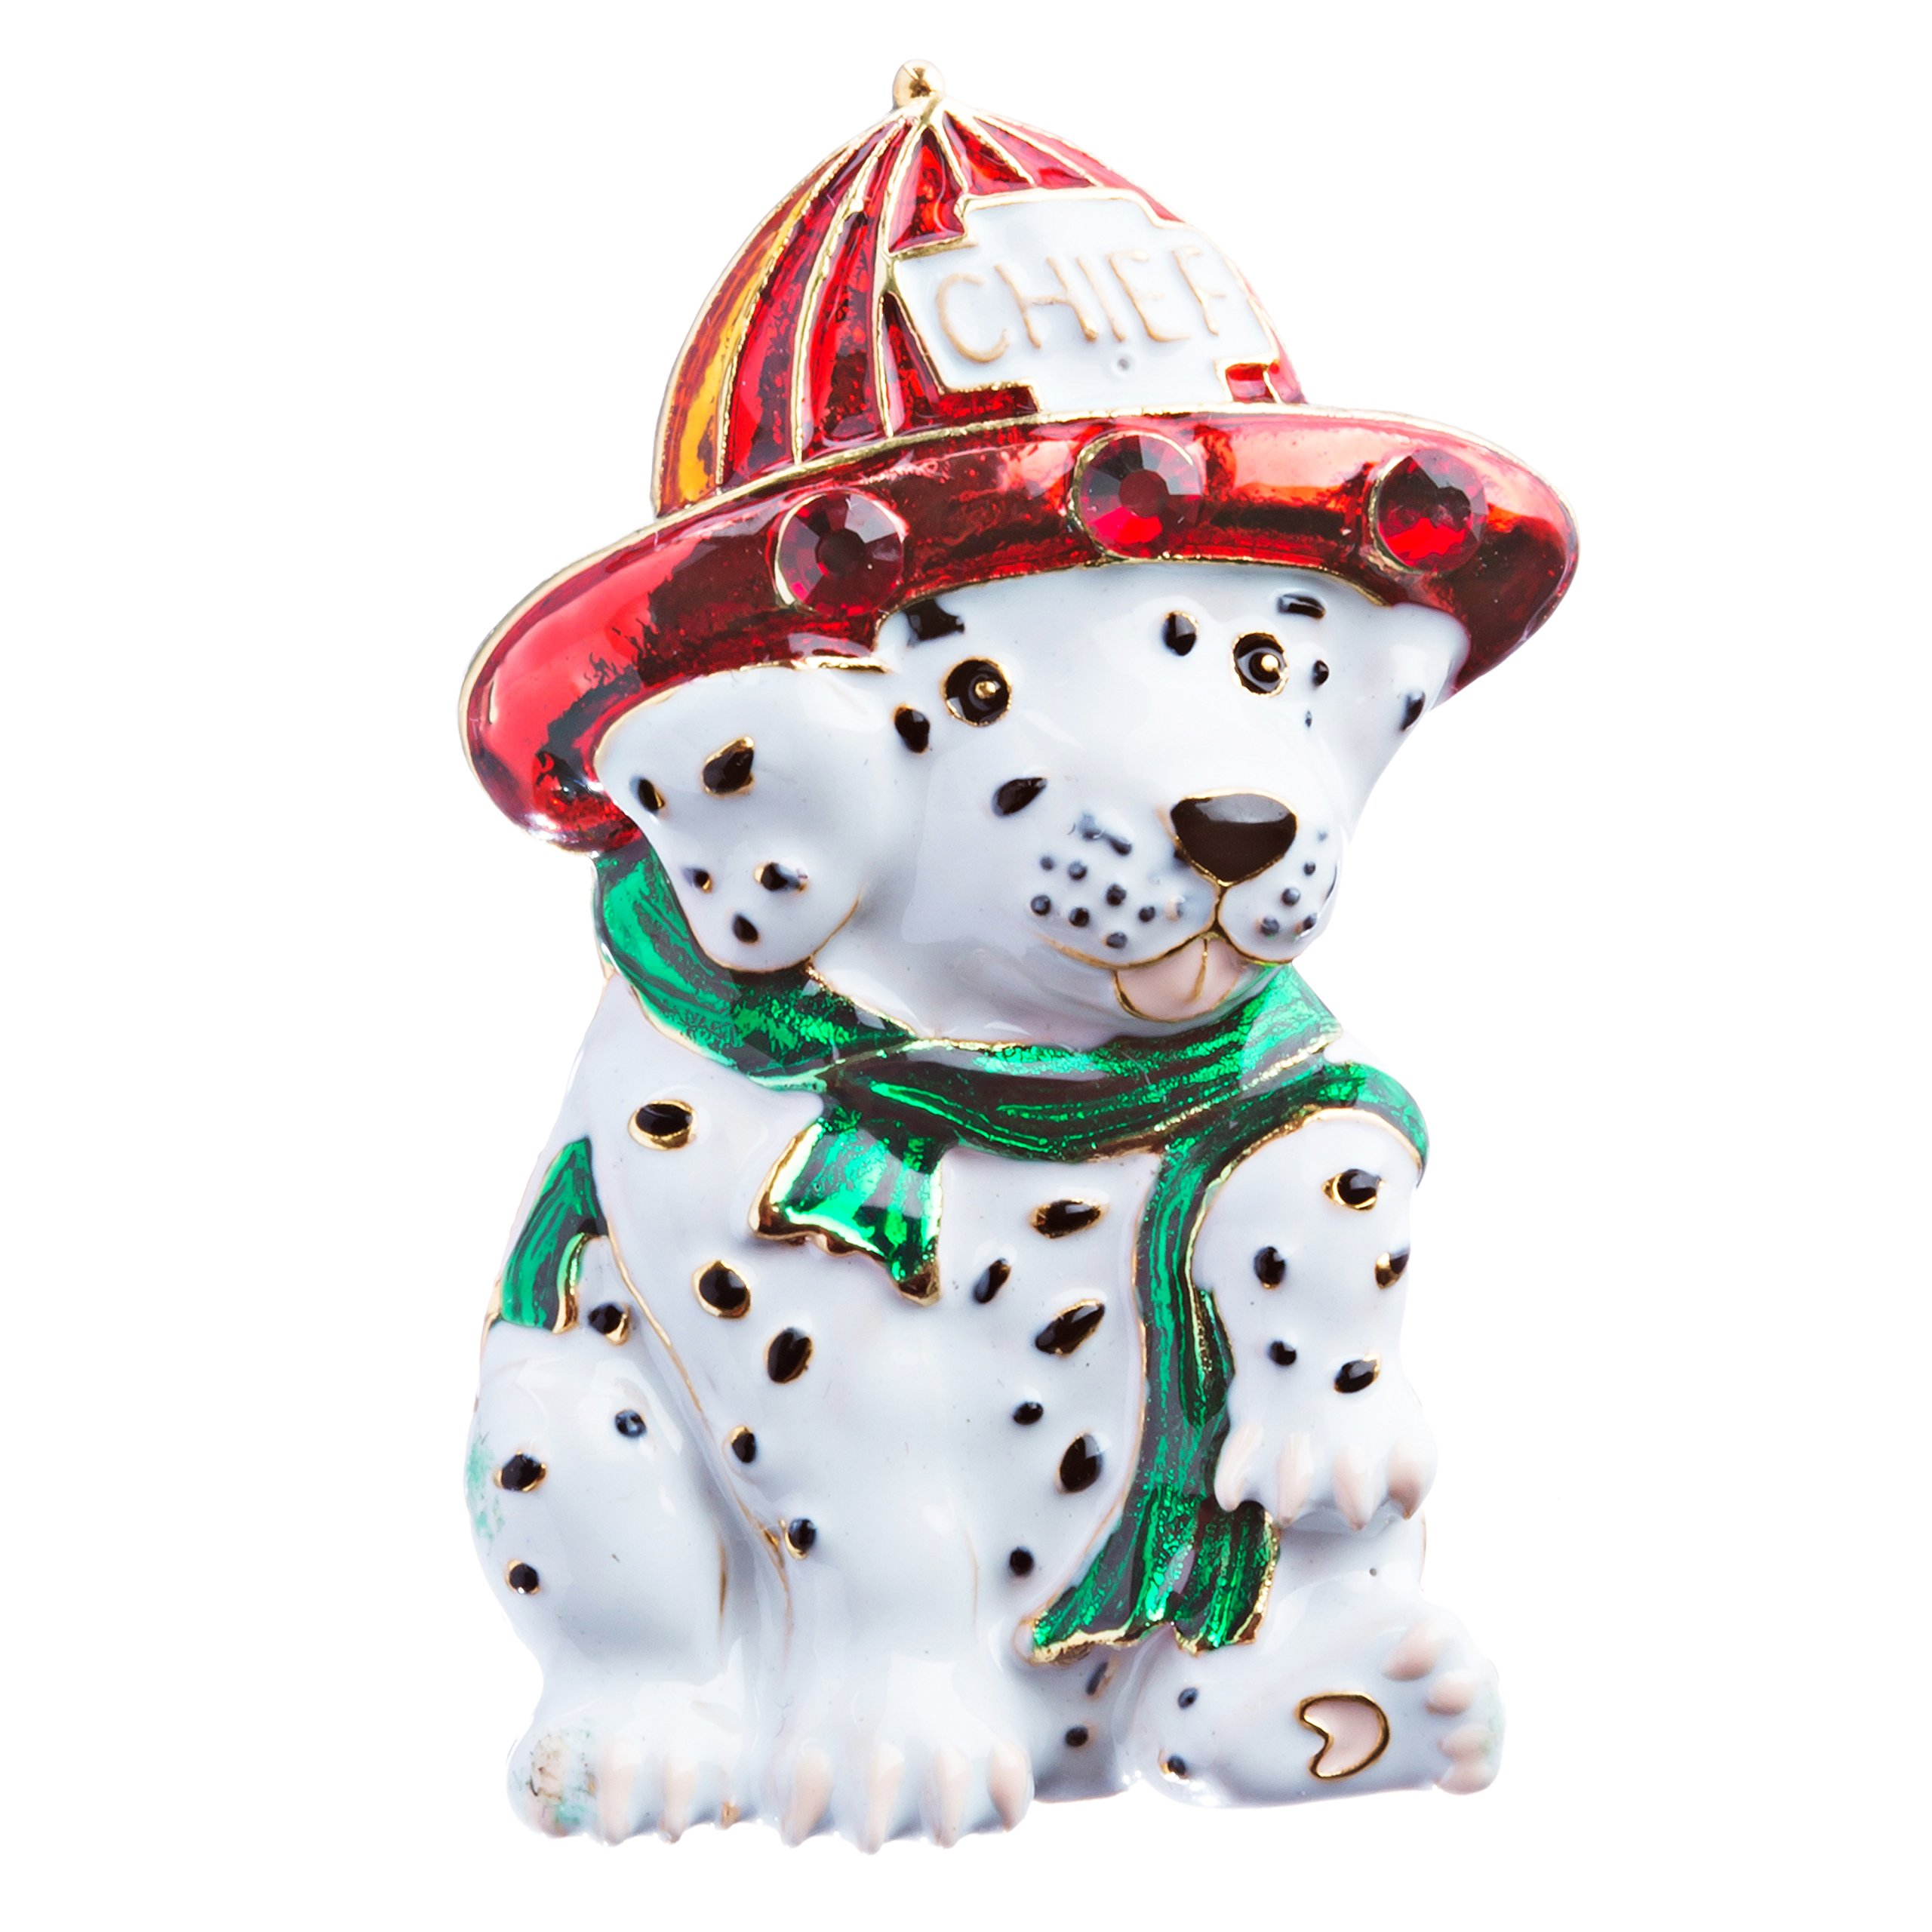 ACCESSORIESFOREVER Women Christmas Jewelry Crystal Rhinestone Holiday Chief Puppy Dog Brooch Pin BH129